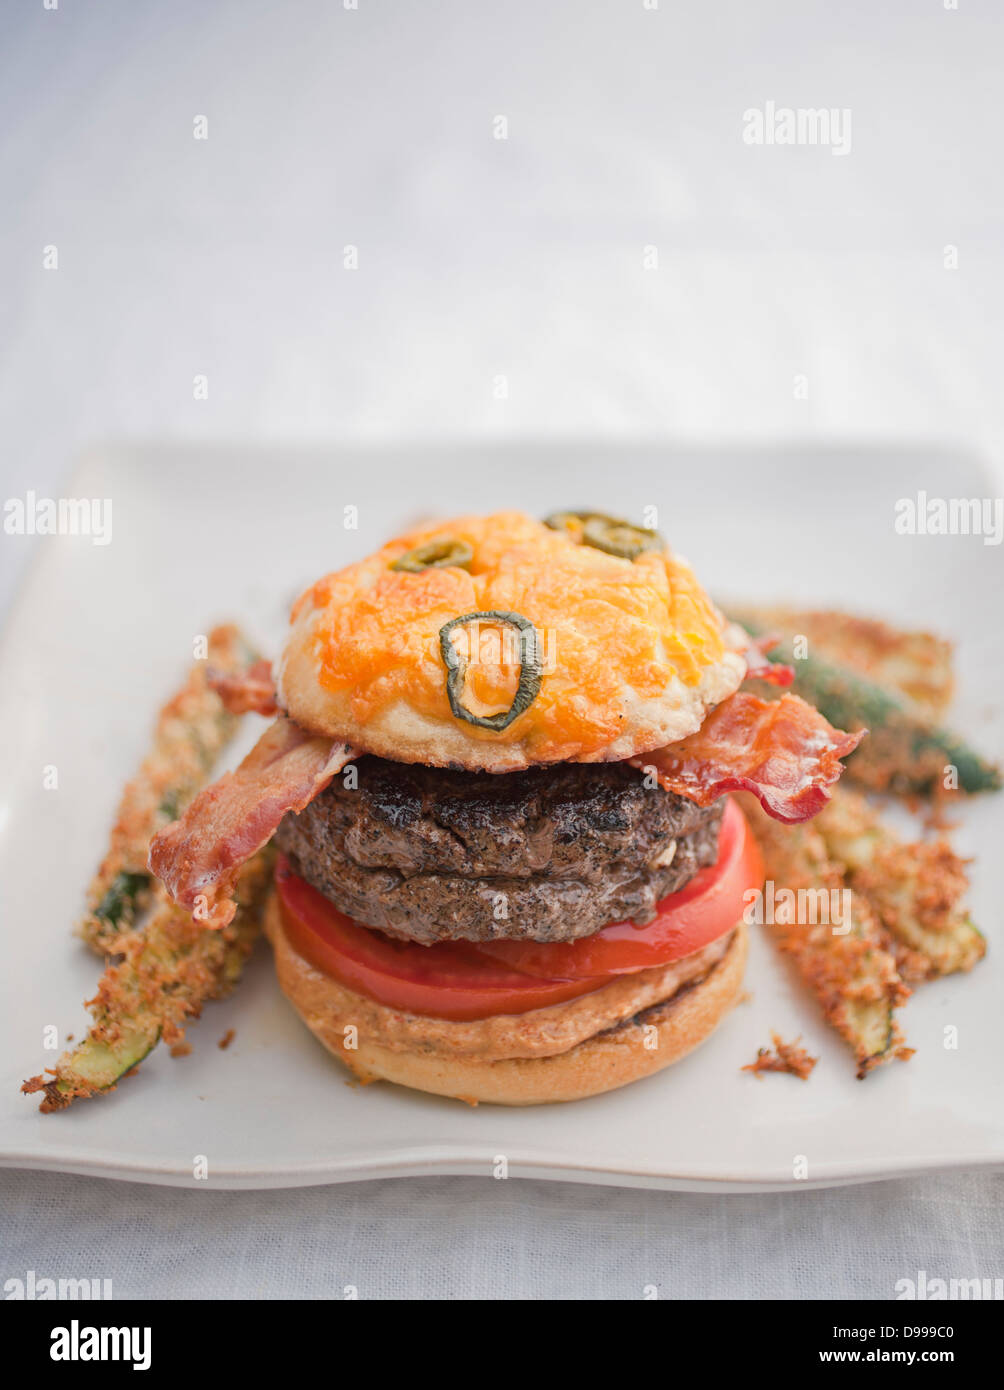 Moutarde tomates bacon Burger fromage jalapeno bun et courgettes frites Photo Stock